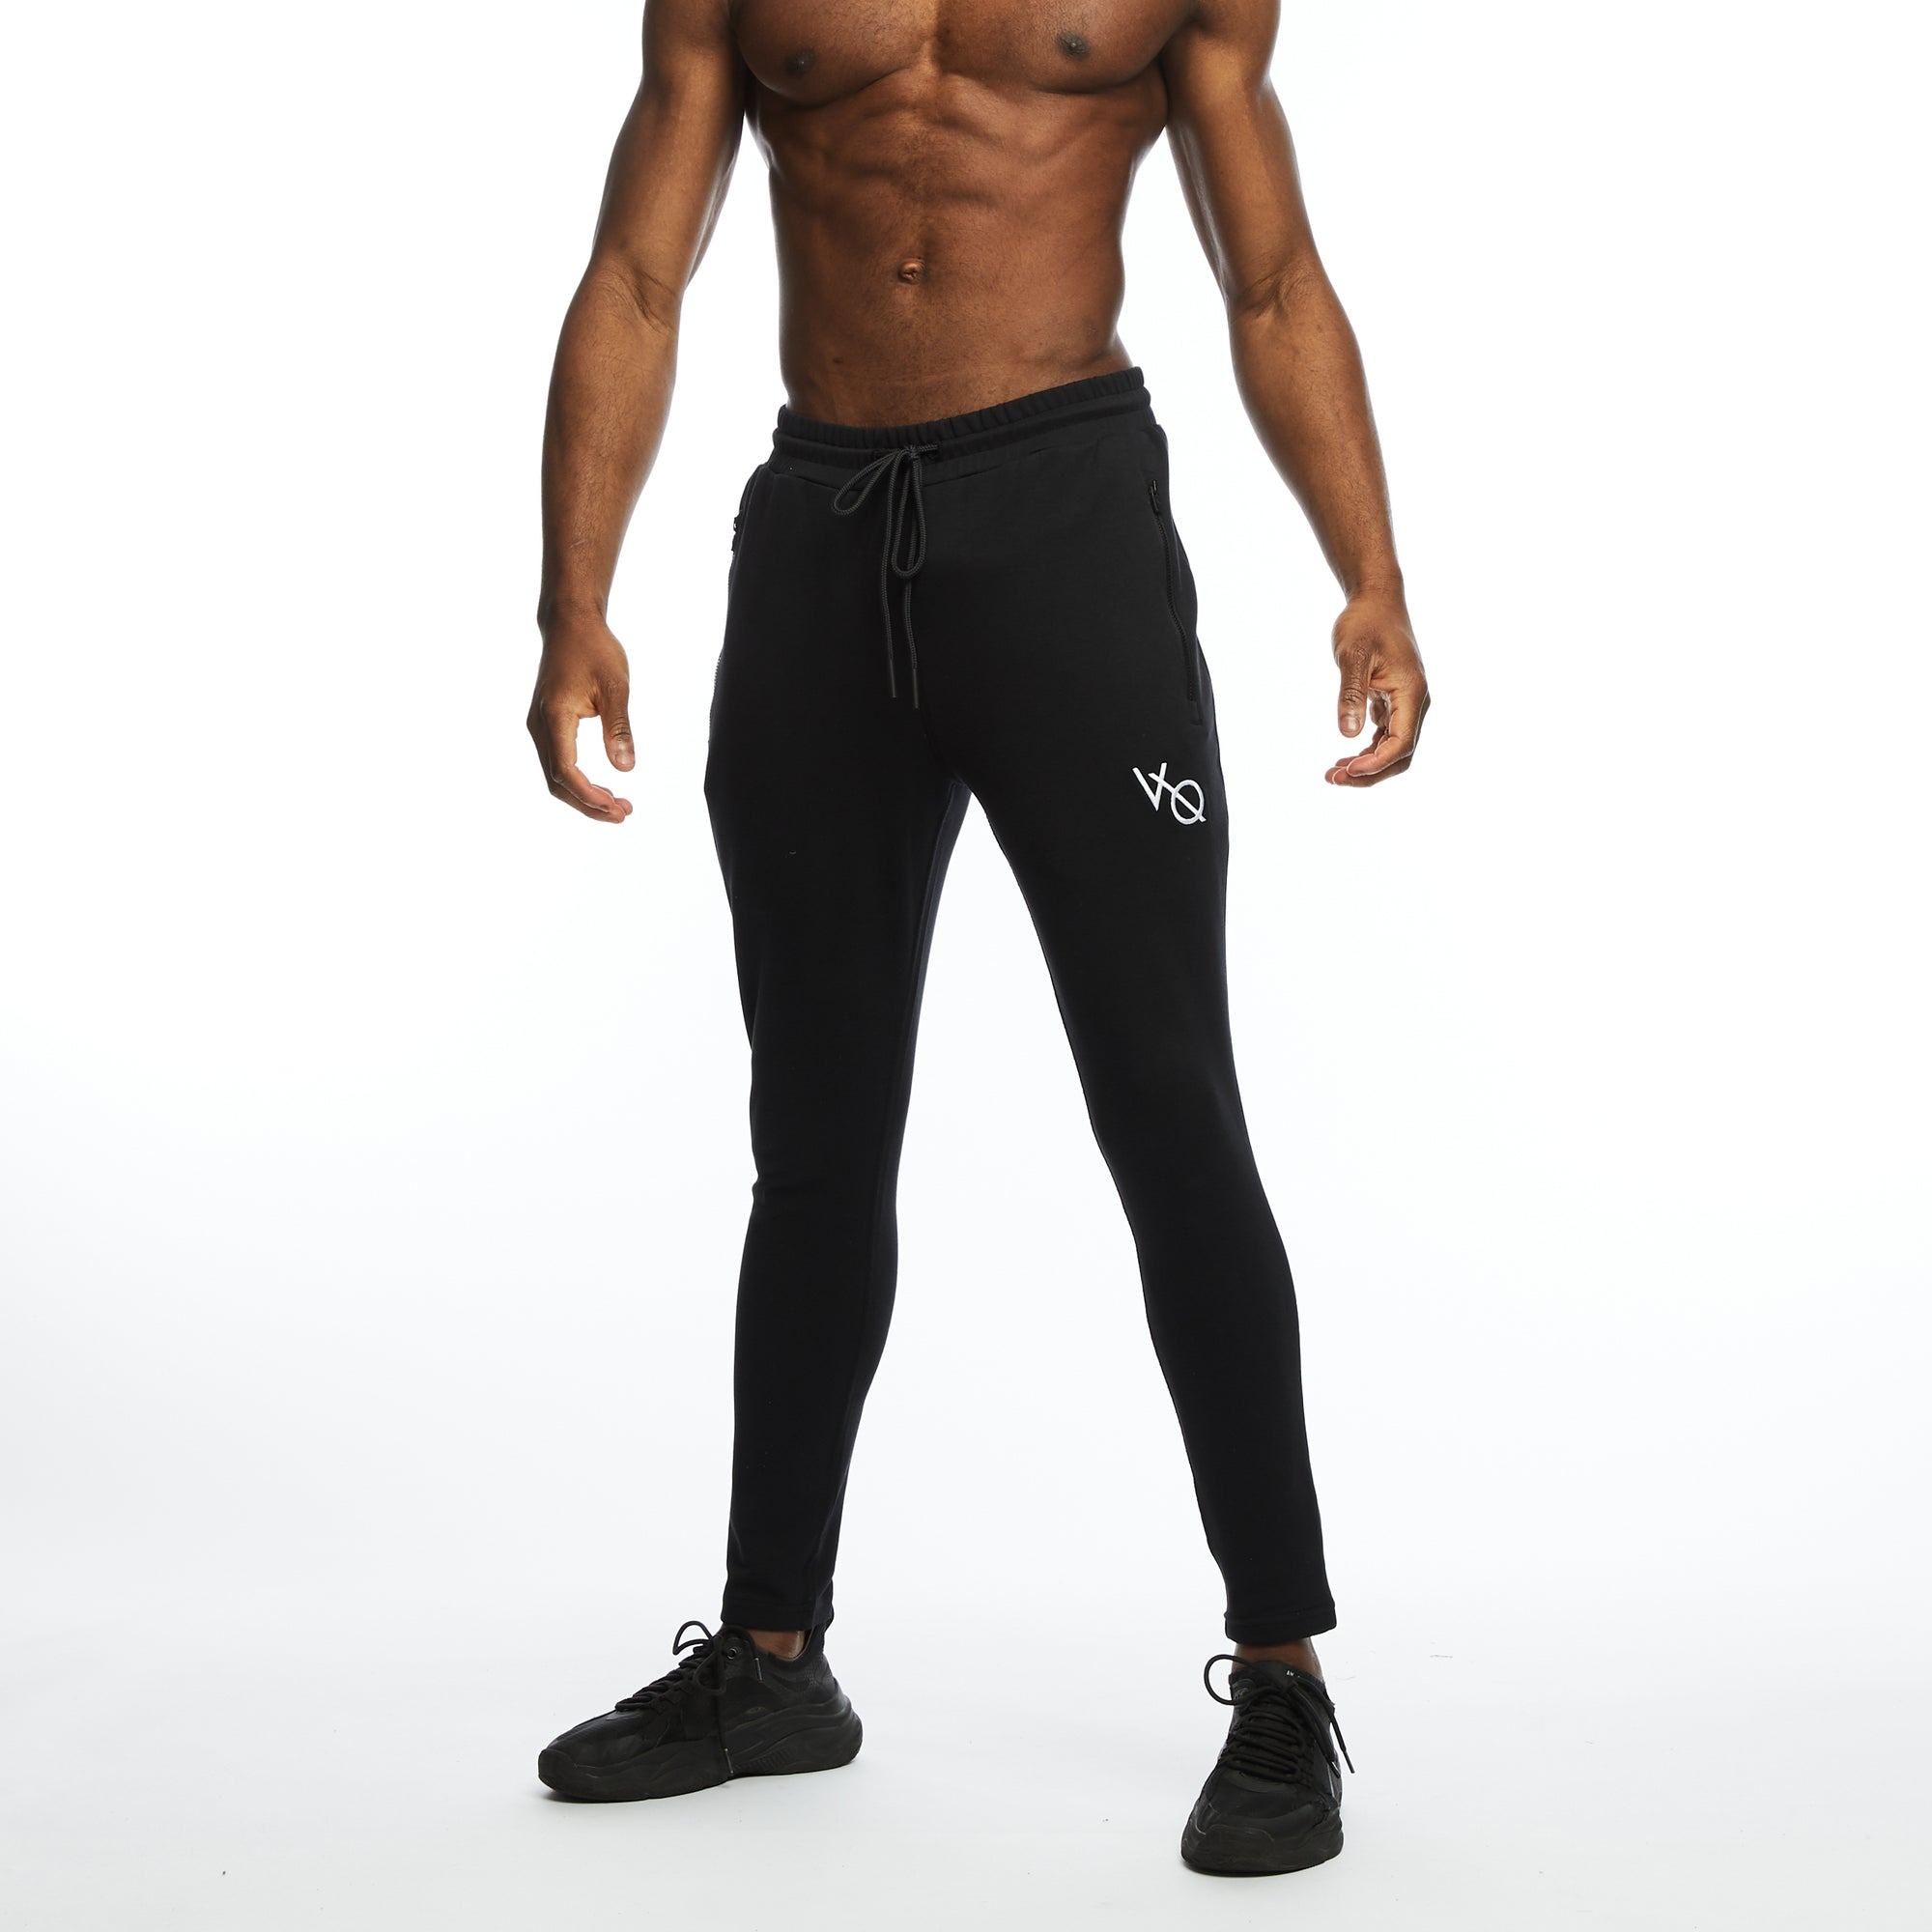 VQFIT Essential Black Tapered Sweatpants